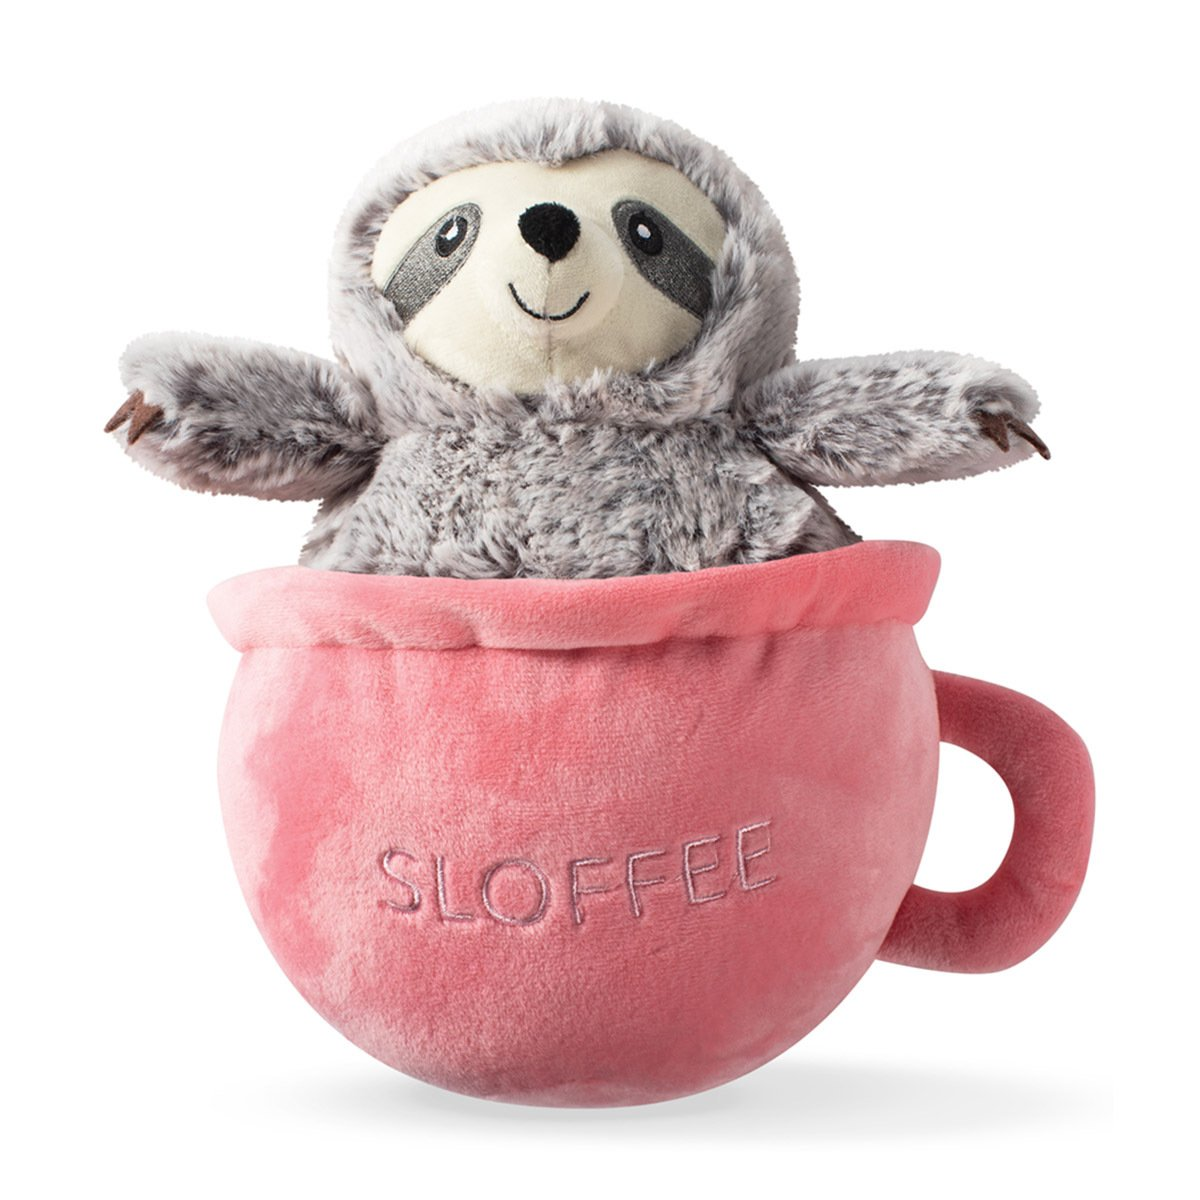 Fringe Studio Sloffee Plush Dog Toy-Toy-Dizzy Dog Collars